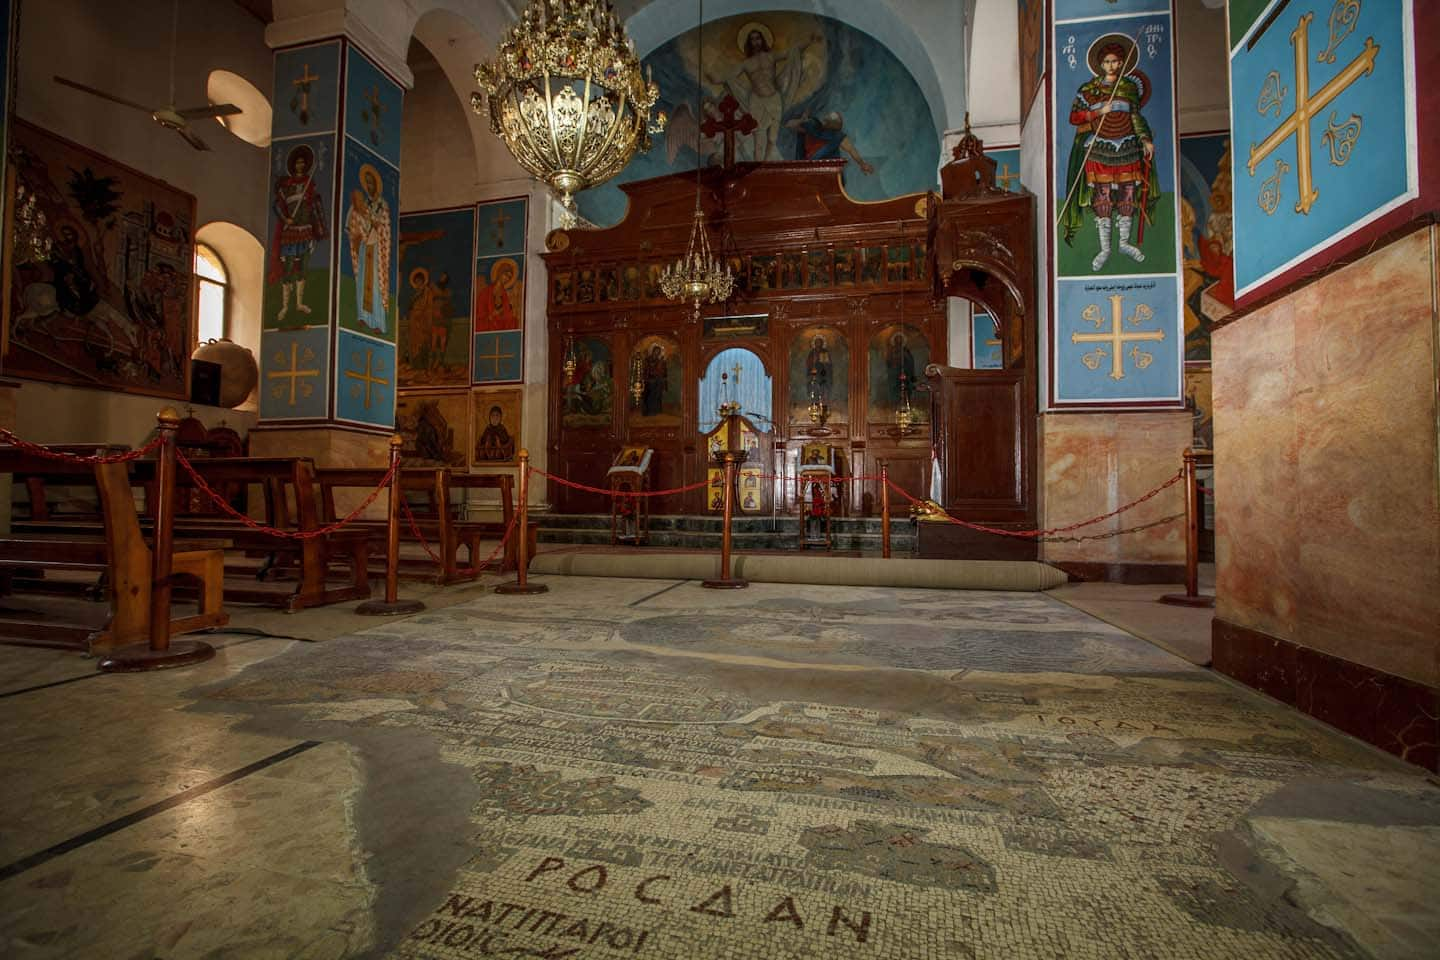 Madaba Mosaic Map and St. George's Church